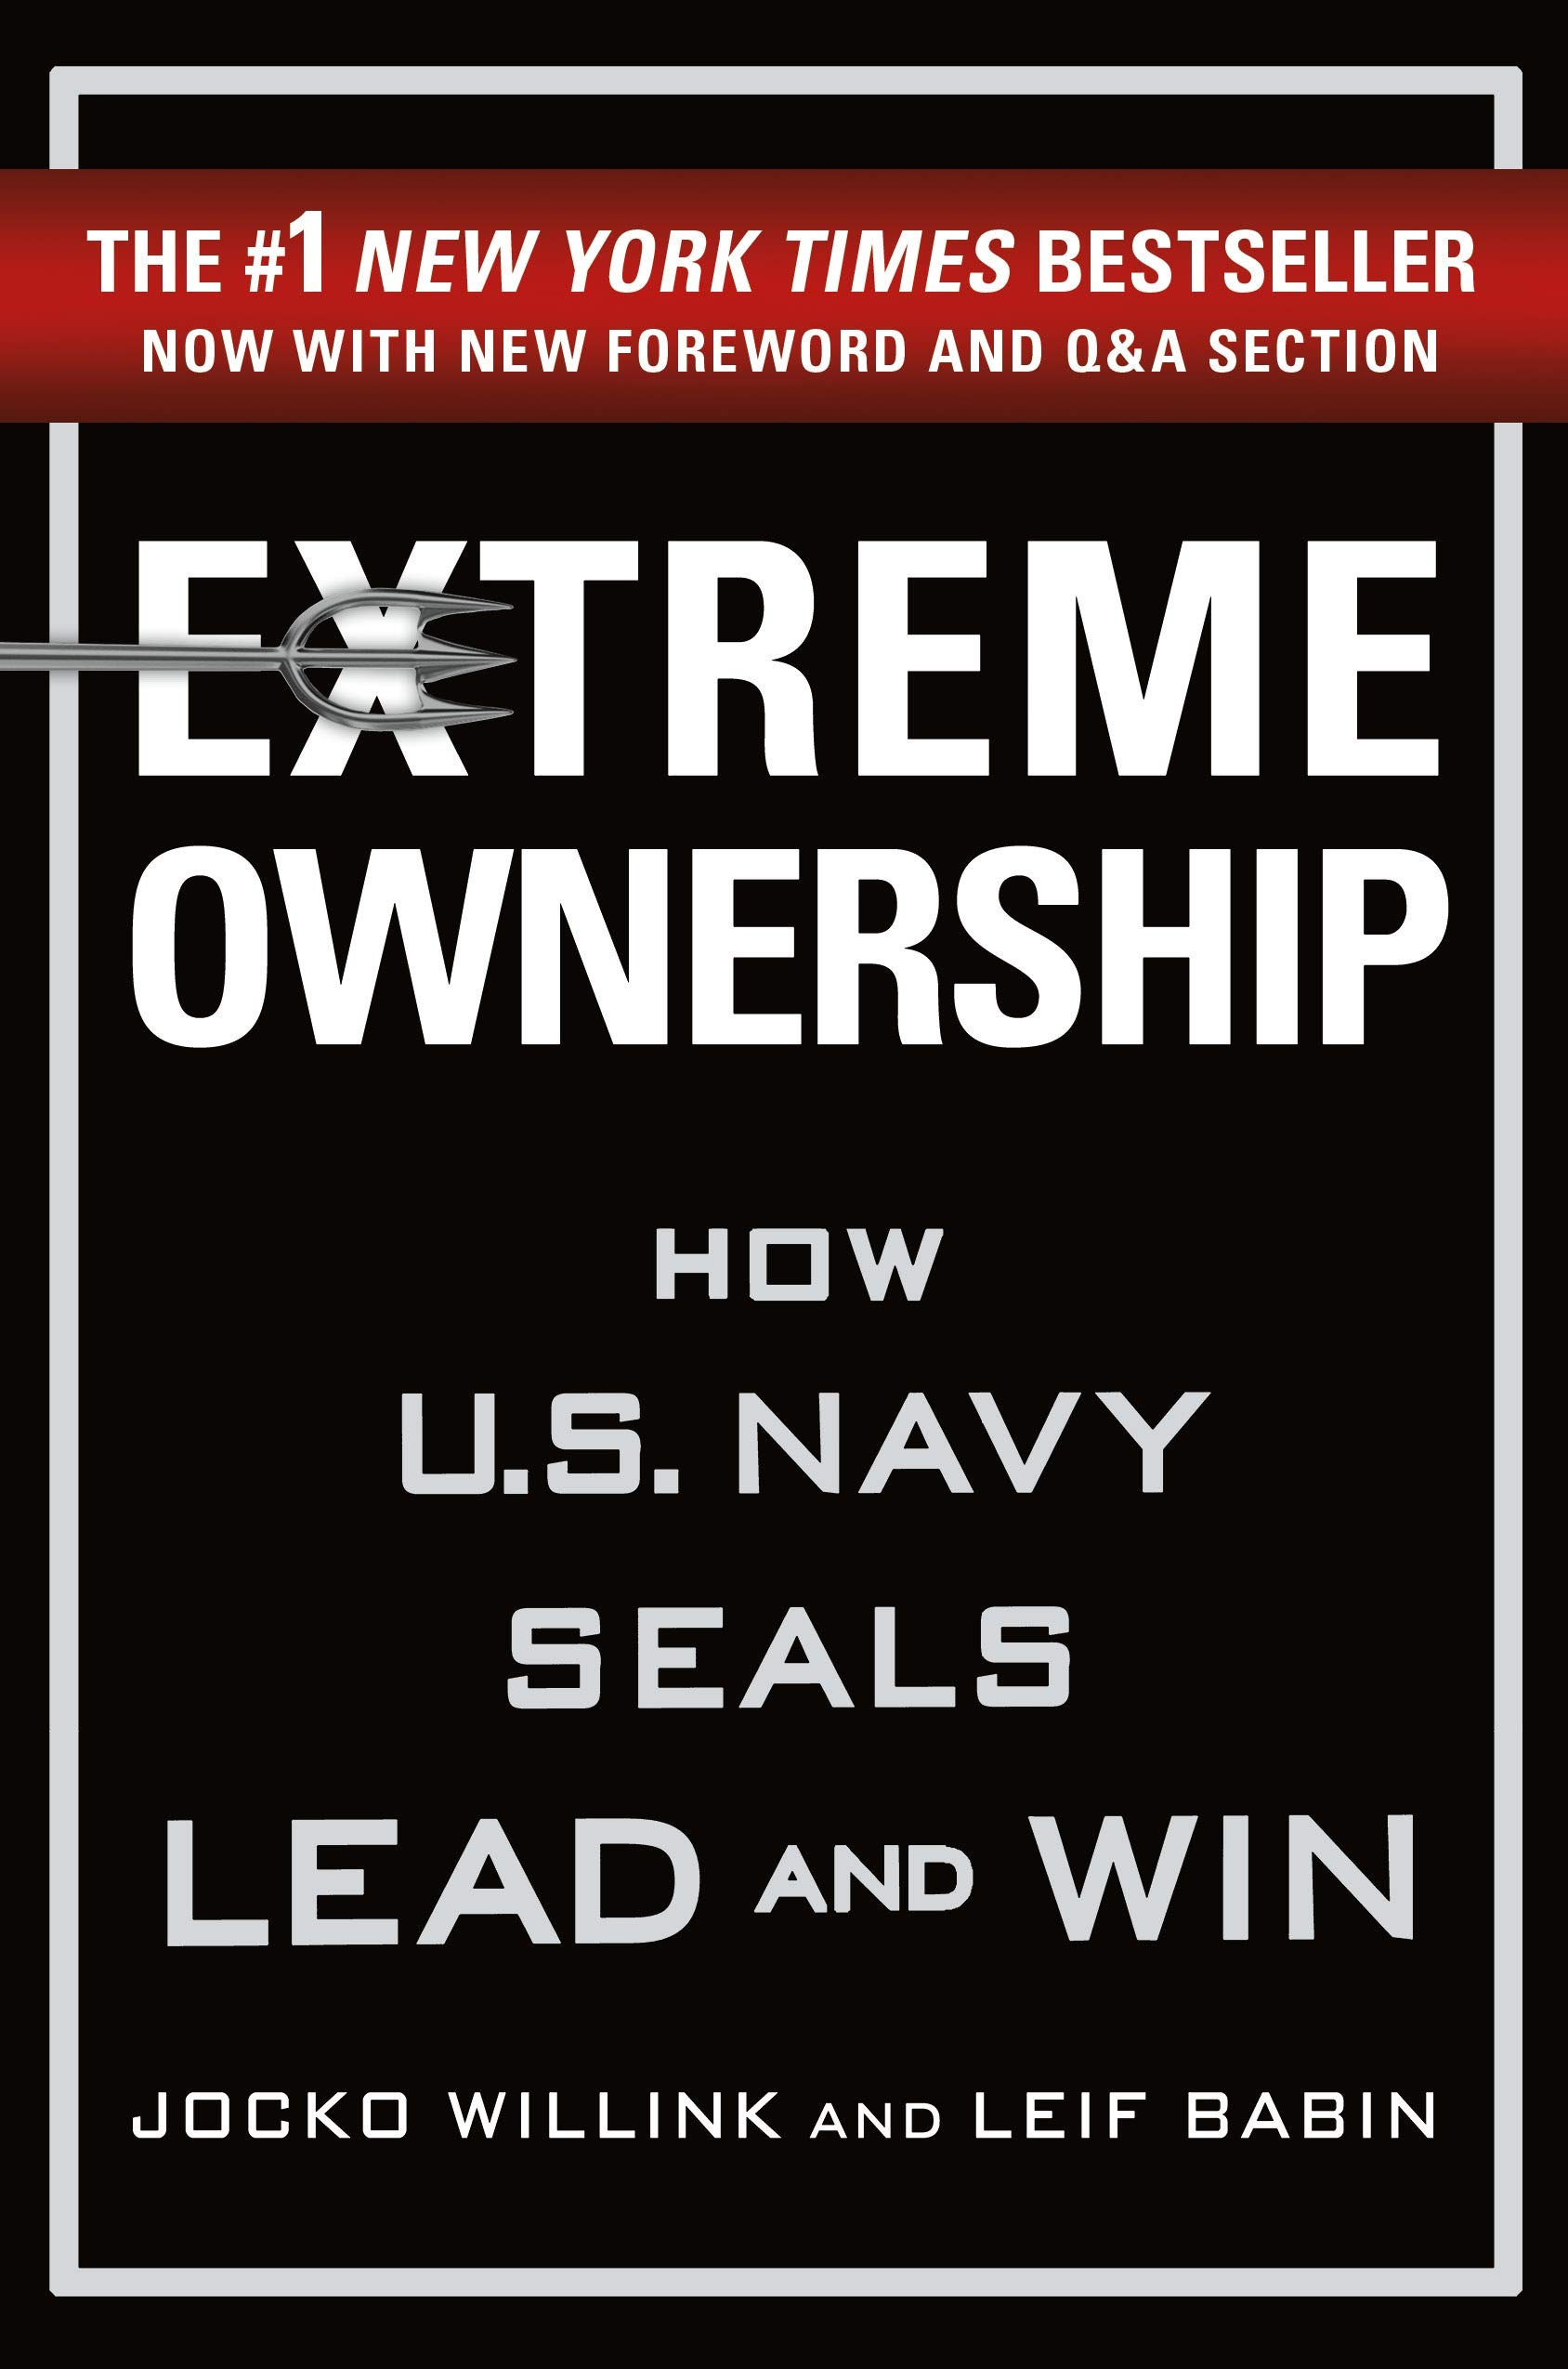 Extreme Ownership: How U.S. Navy SEALs Lead and Win (New Edition) by St. Martin's Press